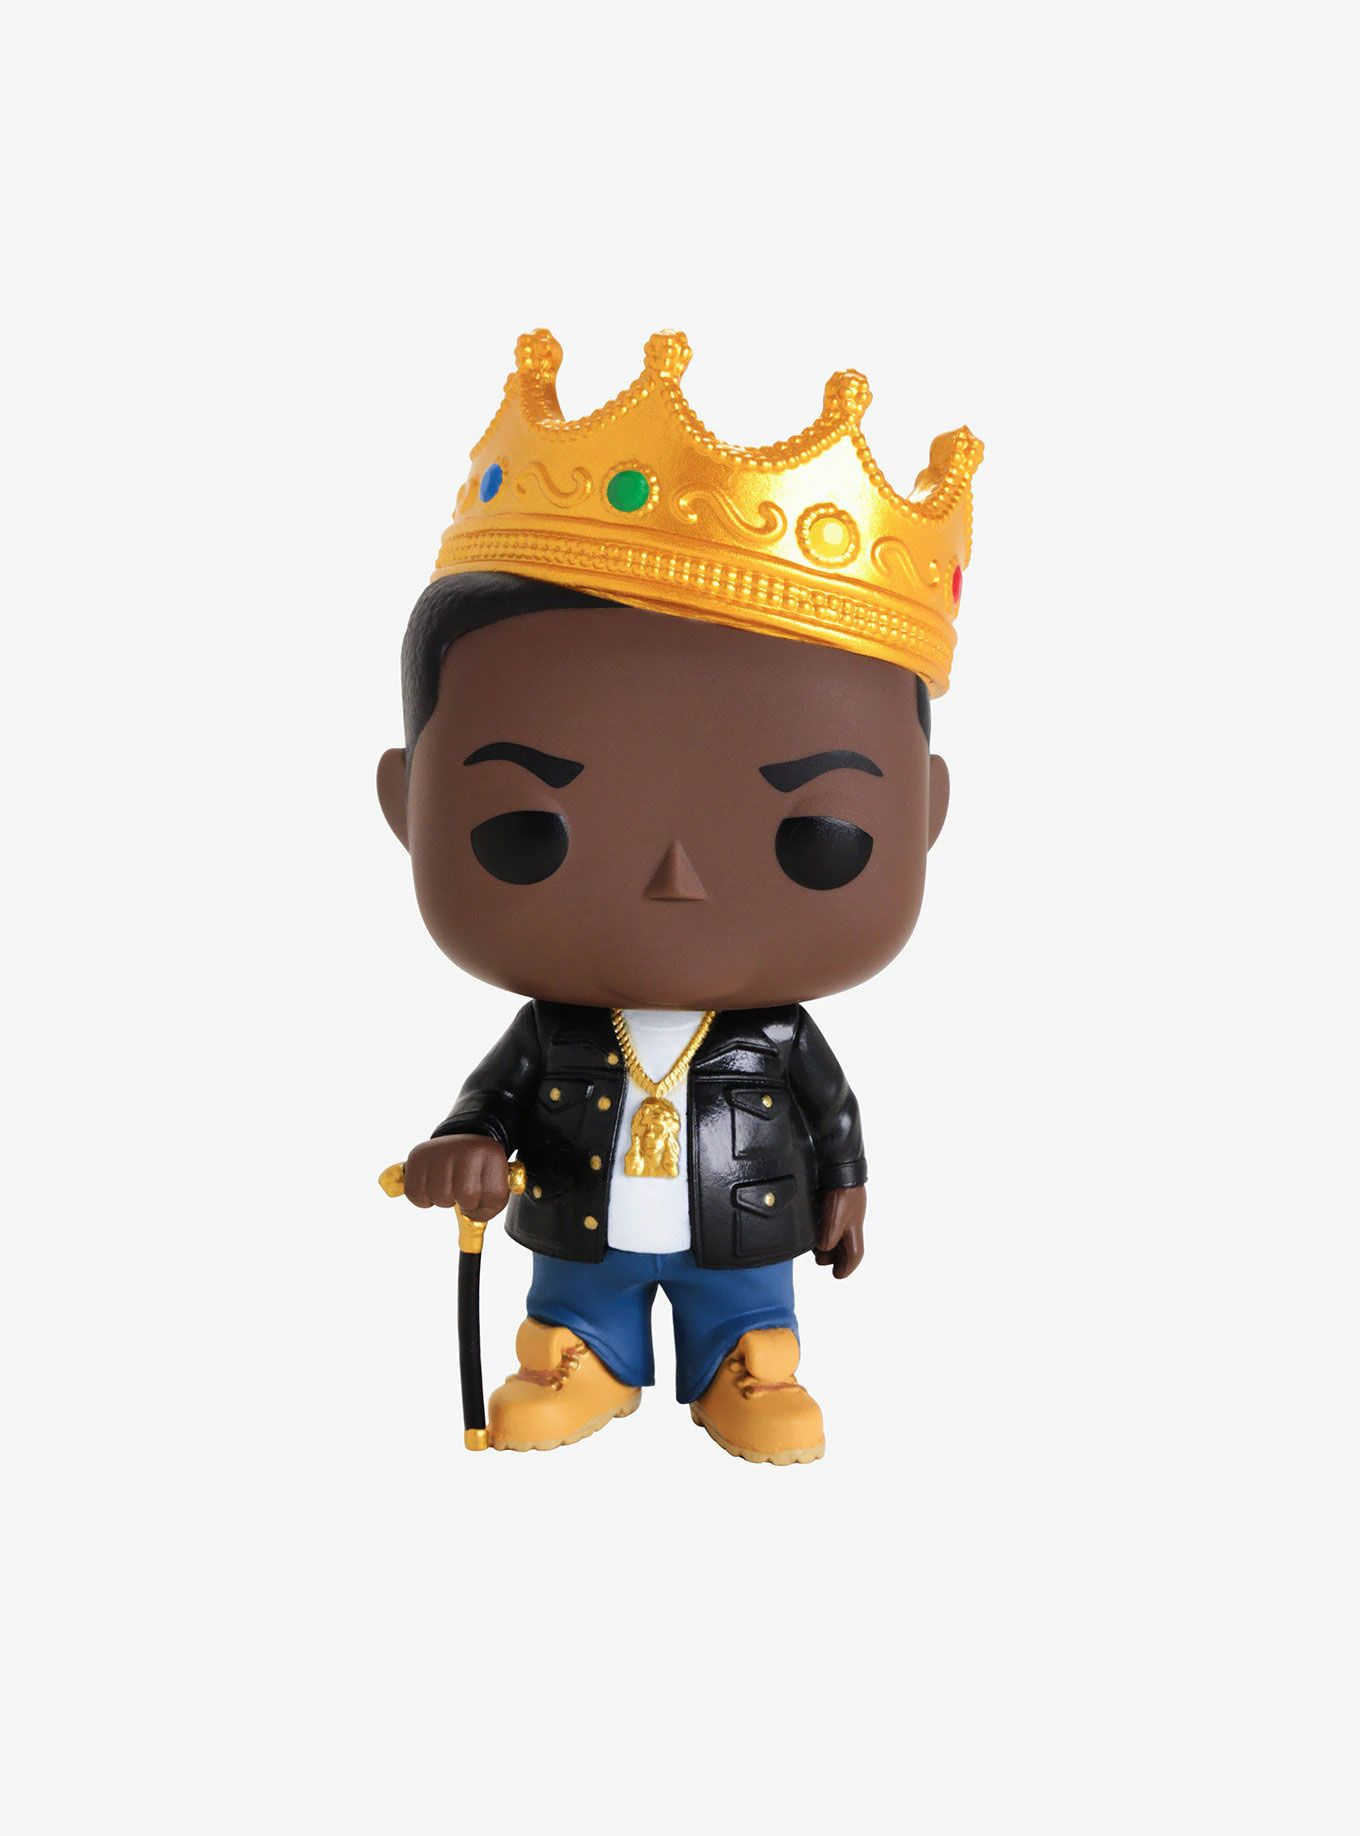 The Notorious B.I.G. with Crown #77 - Funko Pop! Rocks